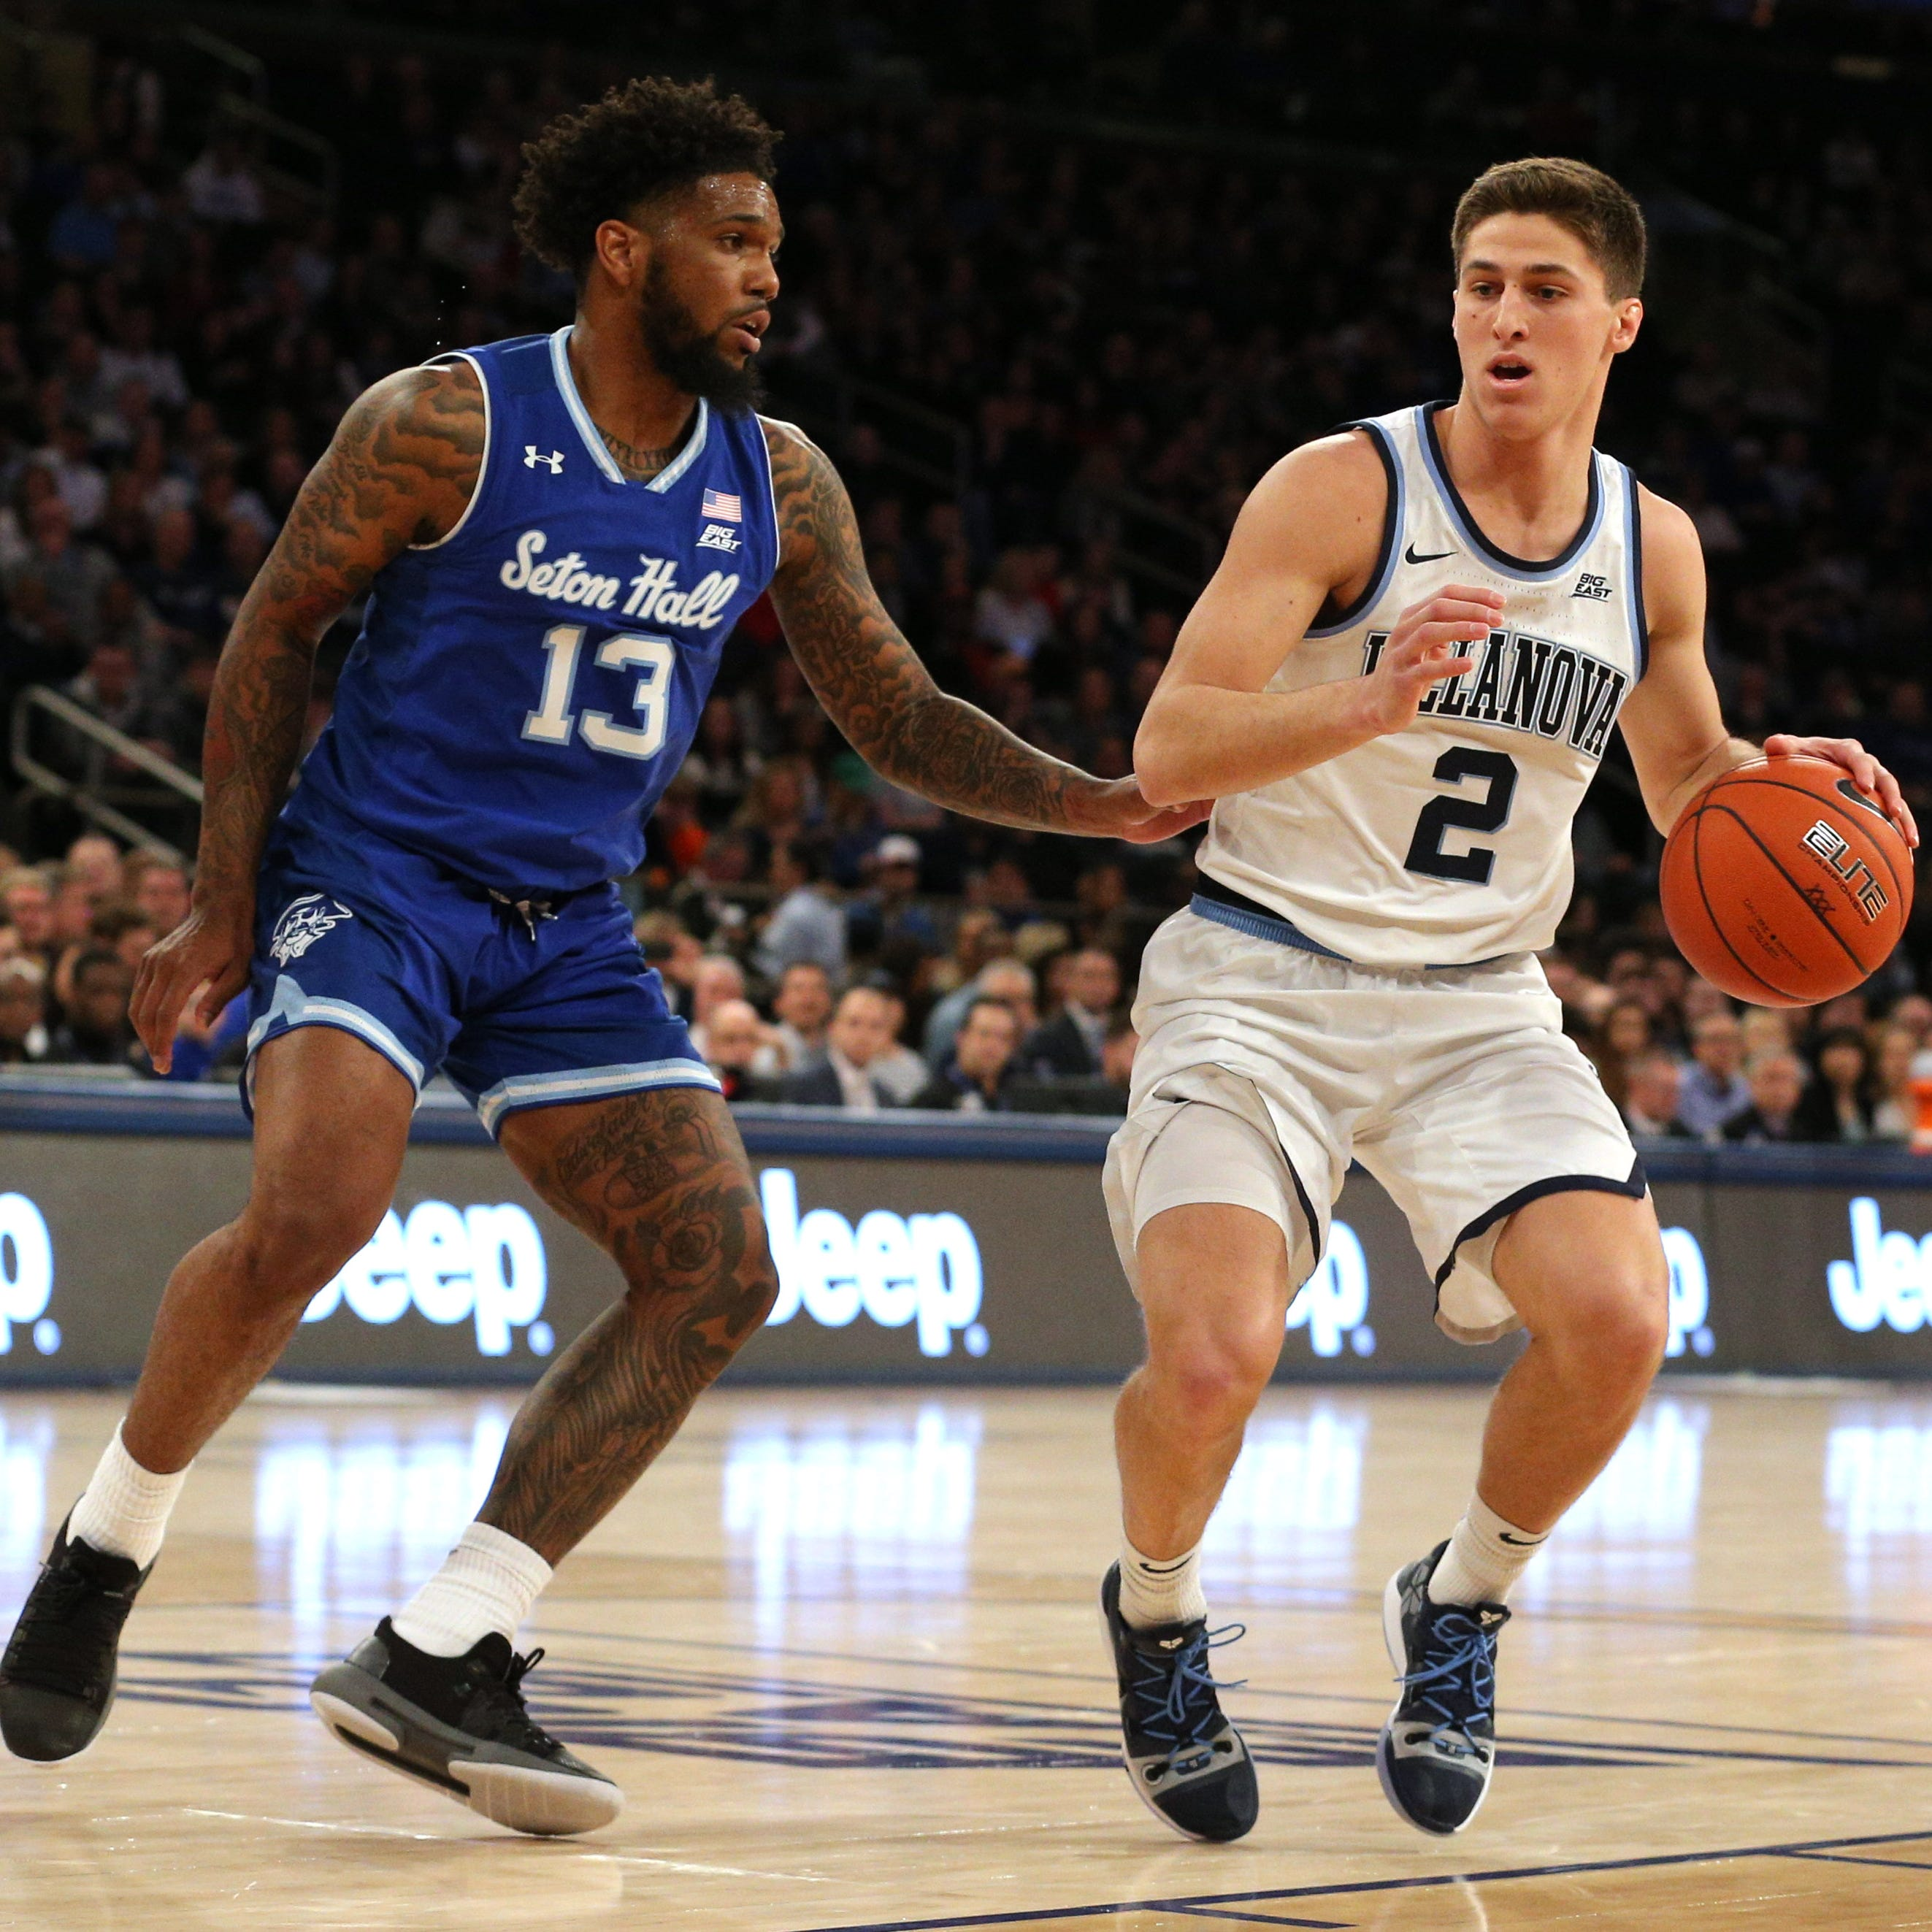 Seton Hall basketball: Even with loss, Pirates can make March Madness run